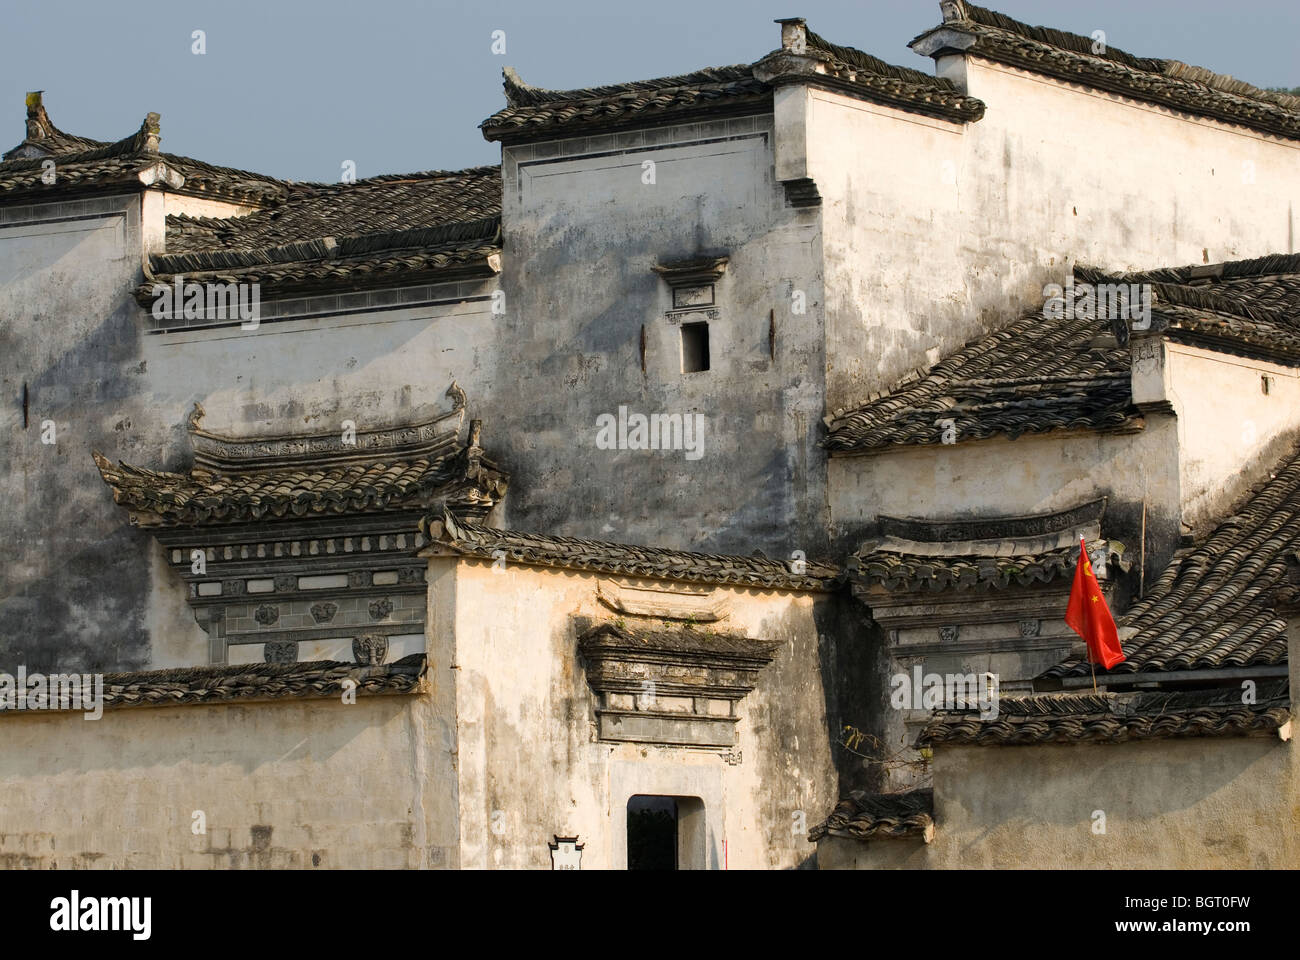 Outline of Huizhou houses in Hongcun. Anhui province, China. - Stock Image